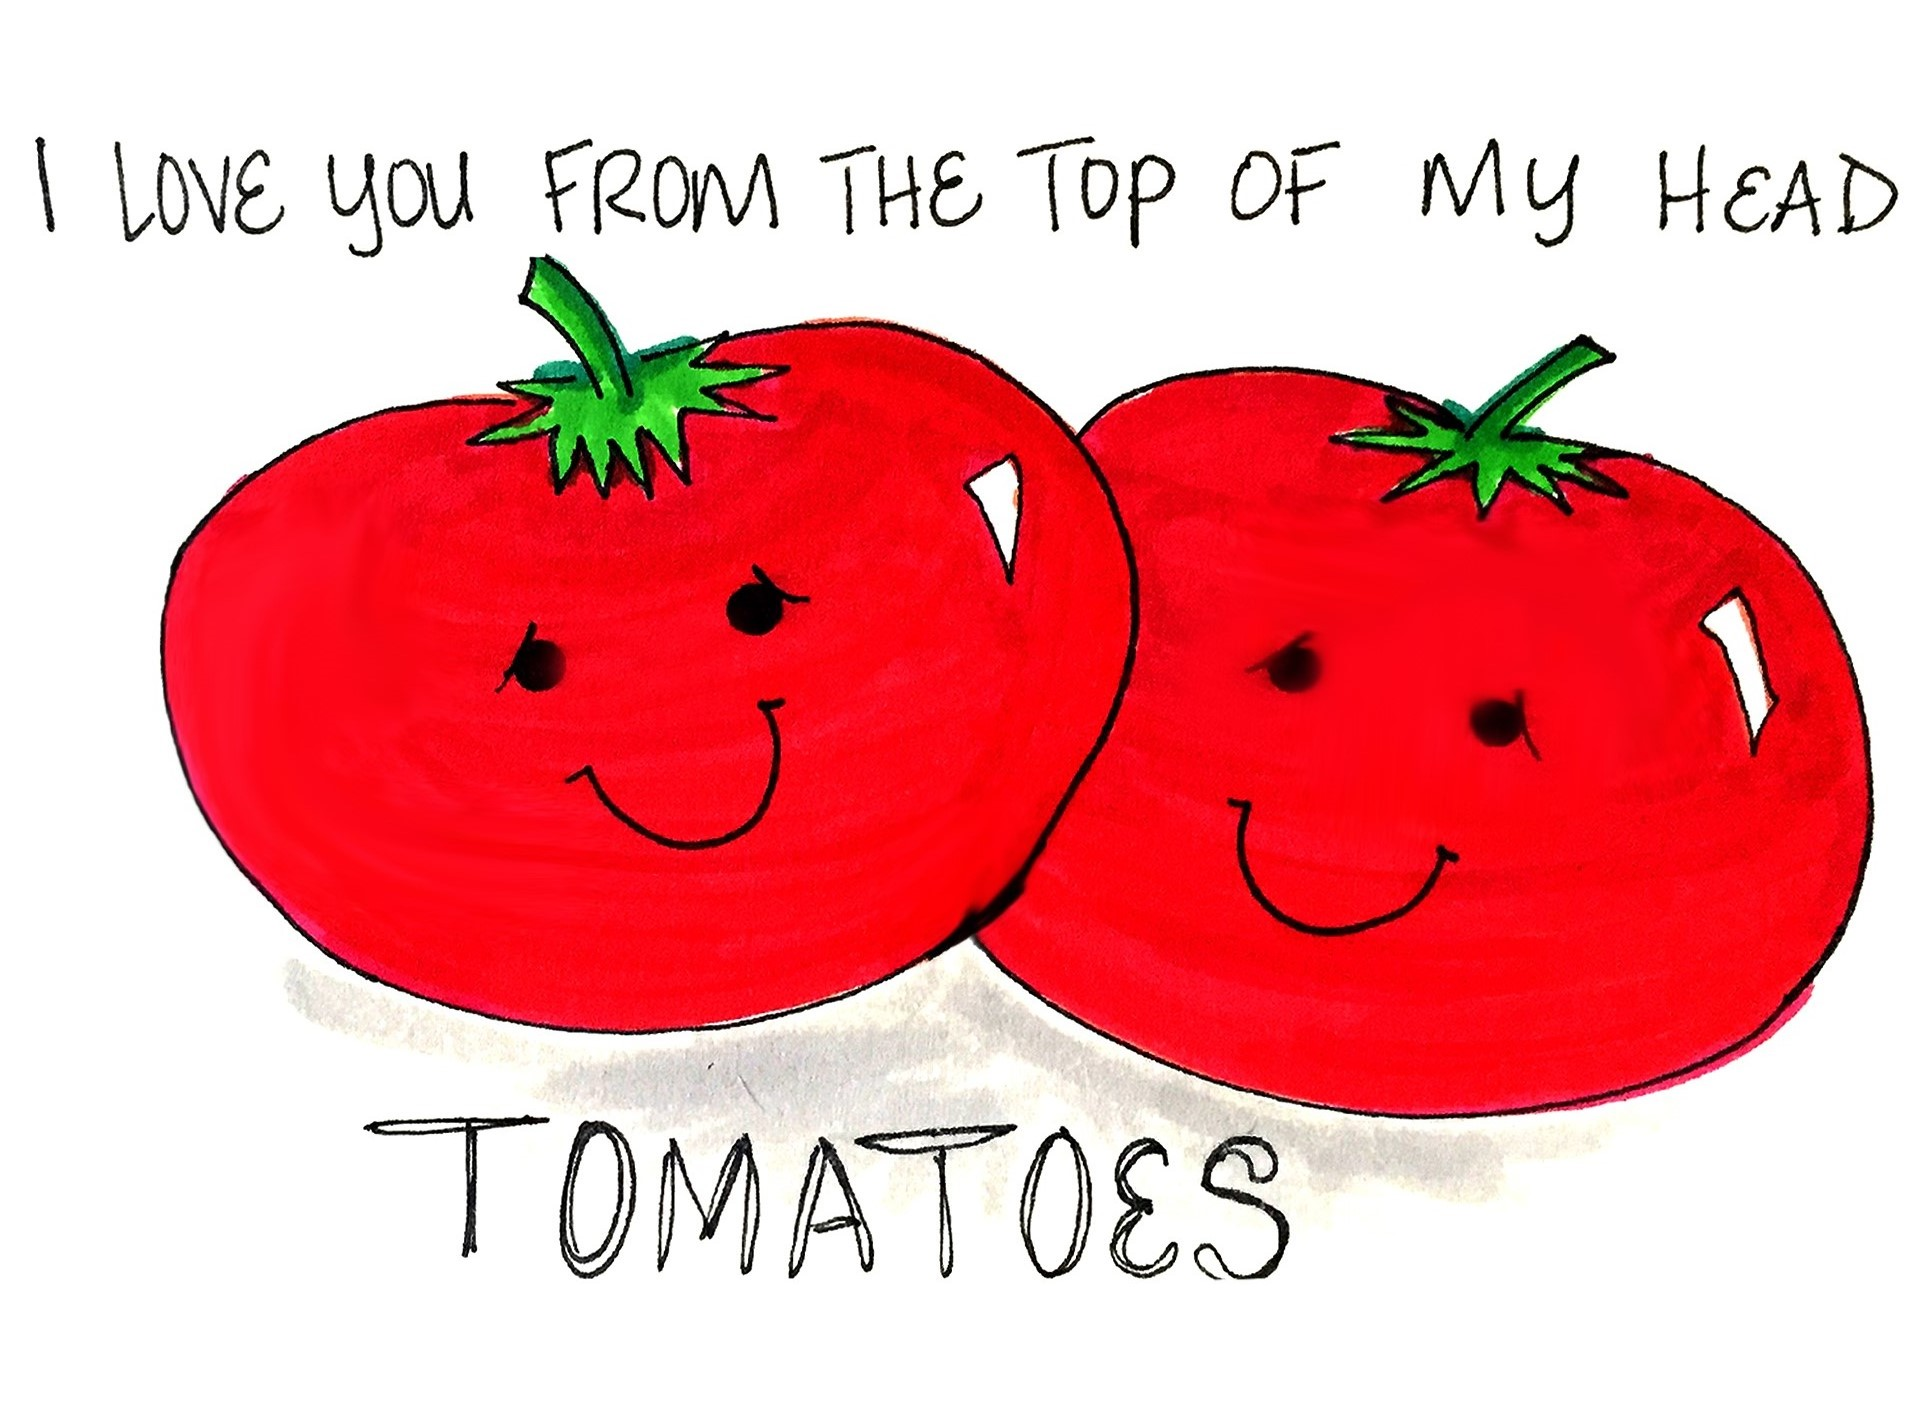 Top of my head to my Tomatoes